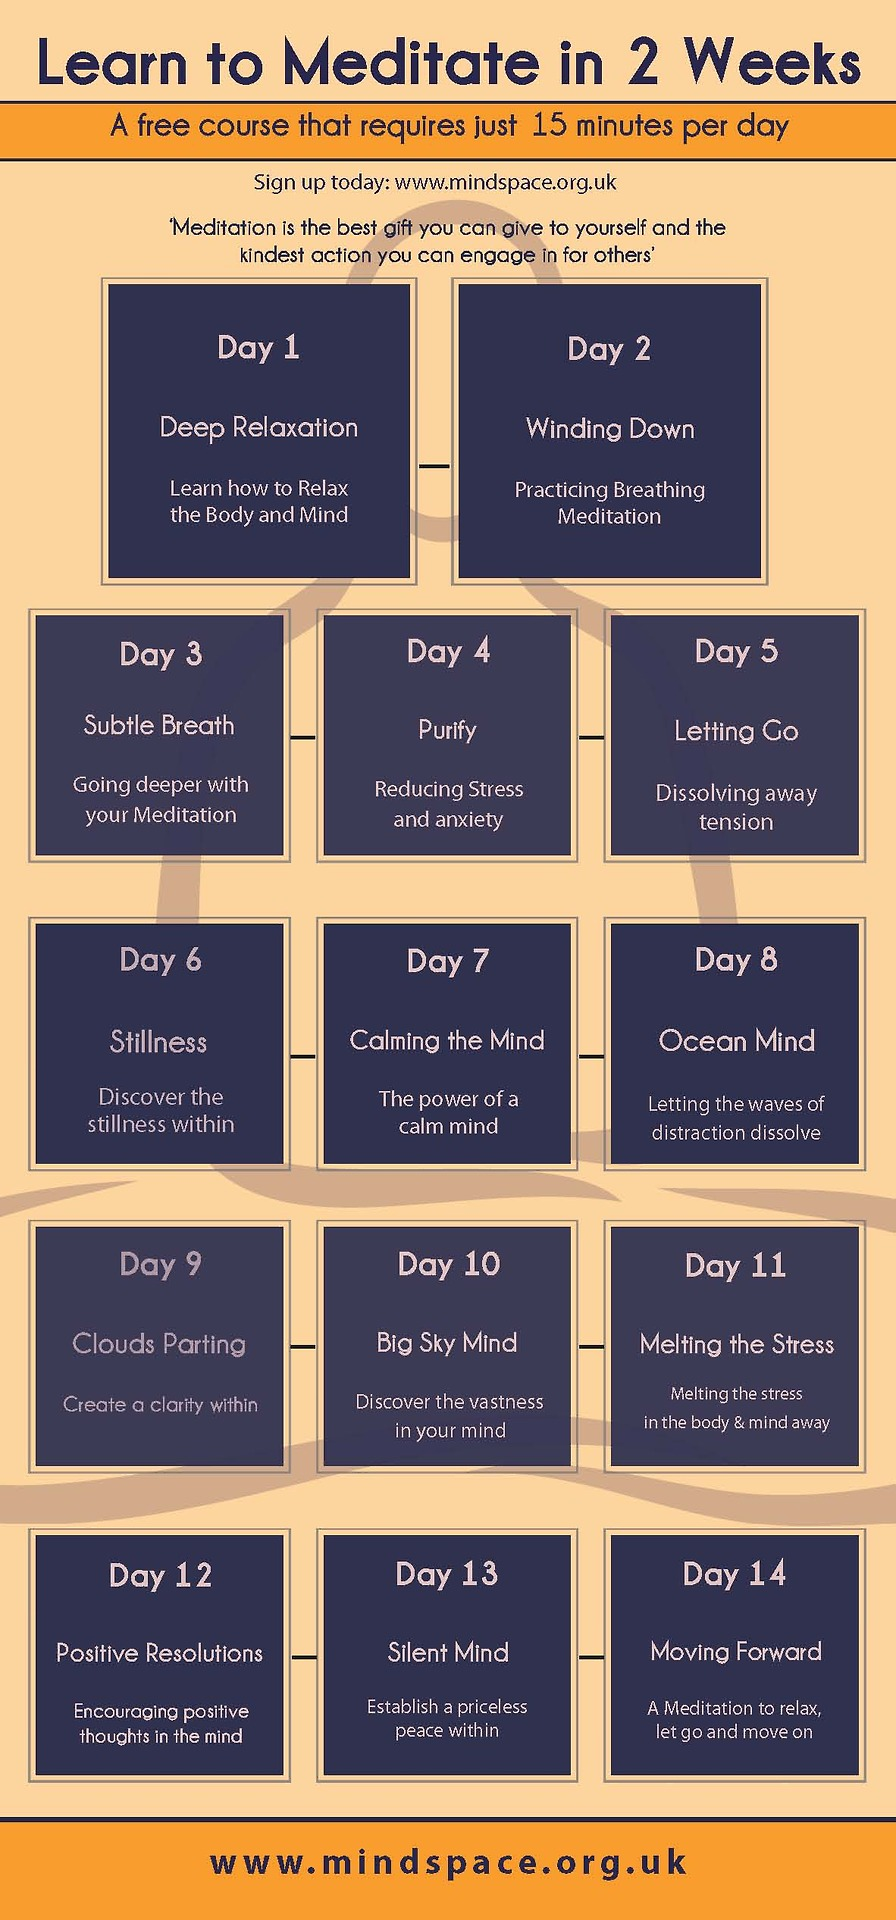 mind-space-uk-learning-the-art-of-meditation-14-day-challenge